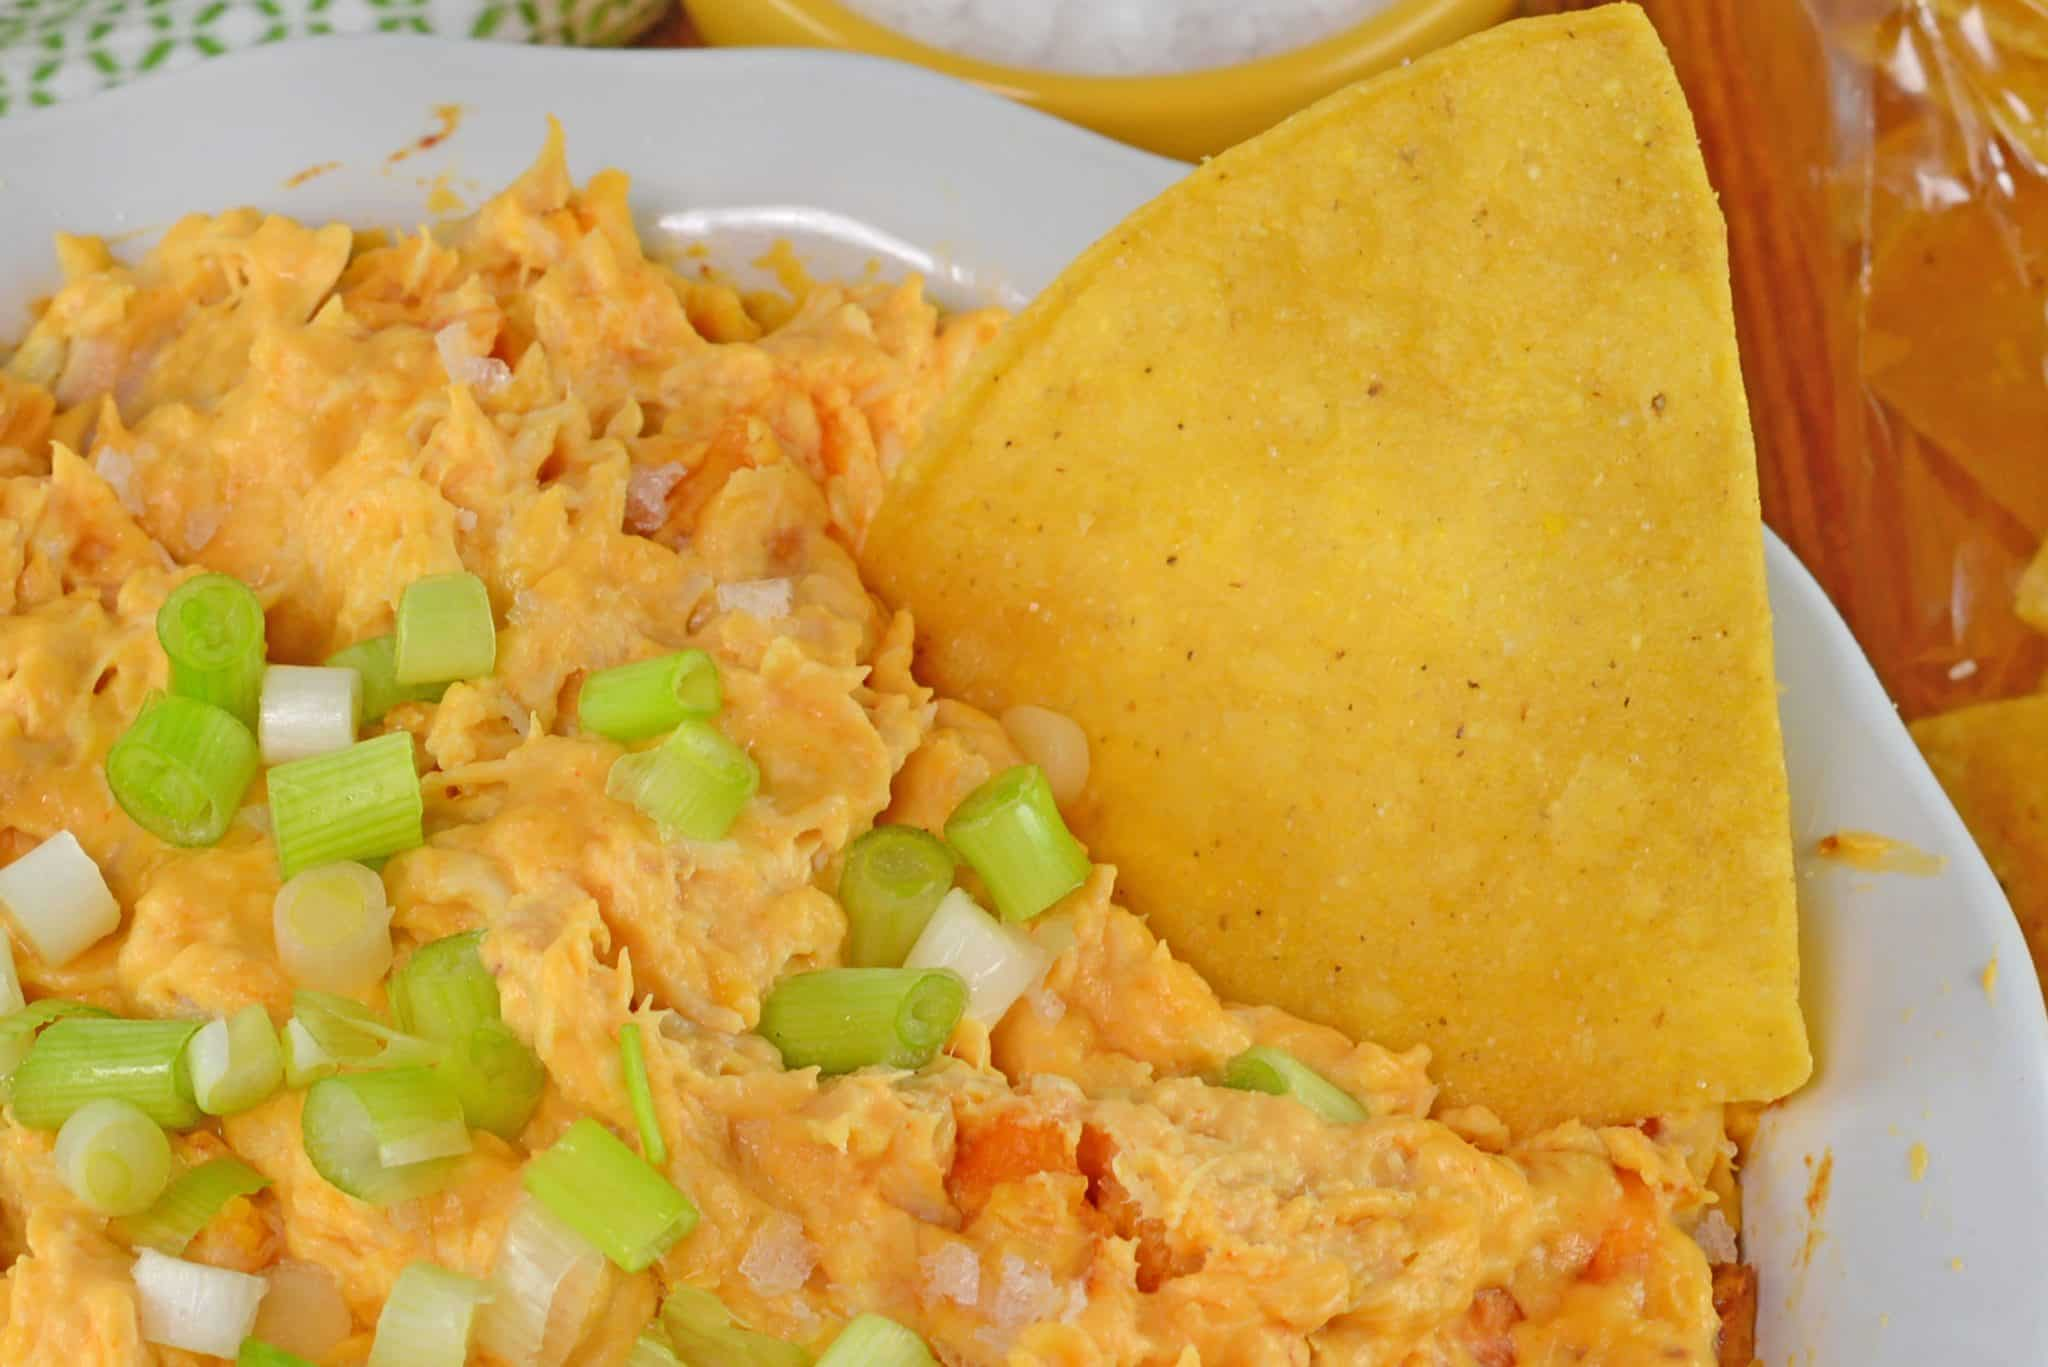 Buffalo Chicken Dip is a quick and easy appetizer for any party! Use pre-shredded chicken to save time for your spicy dip.